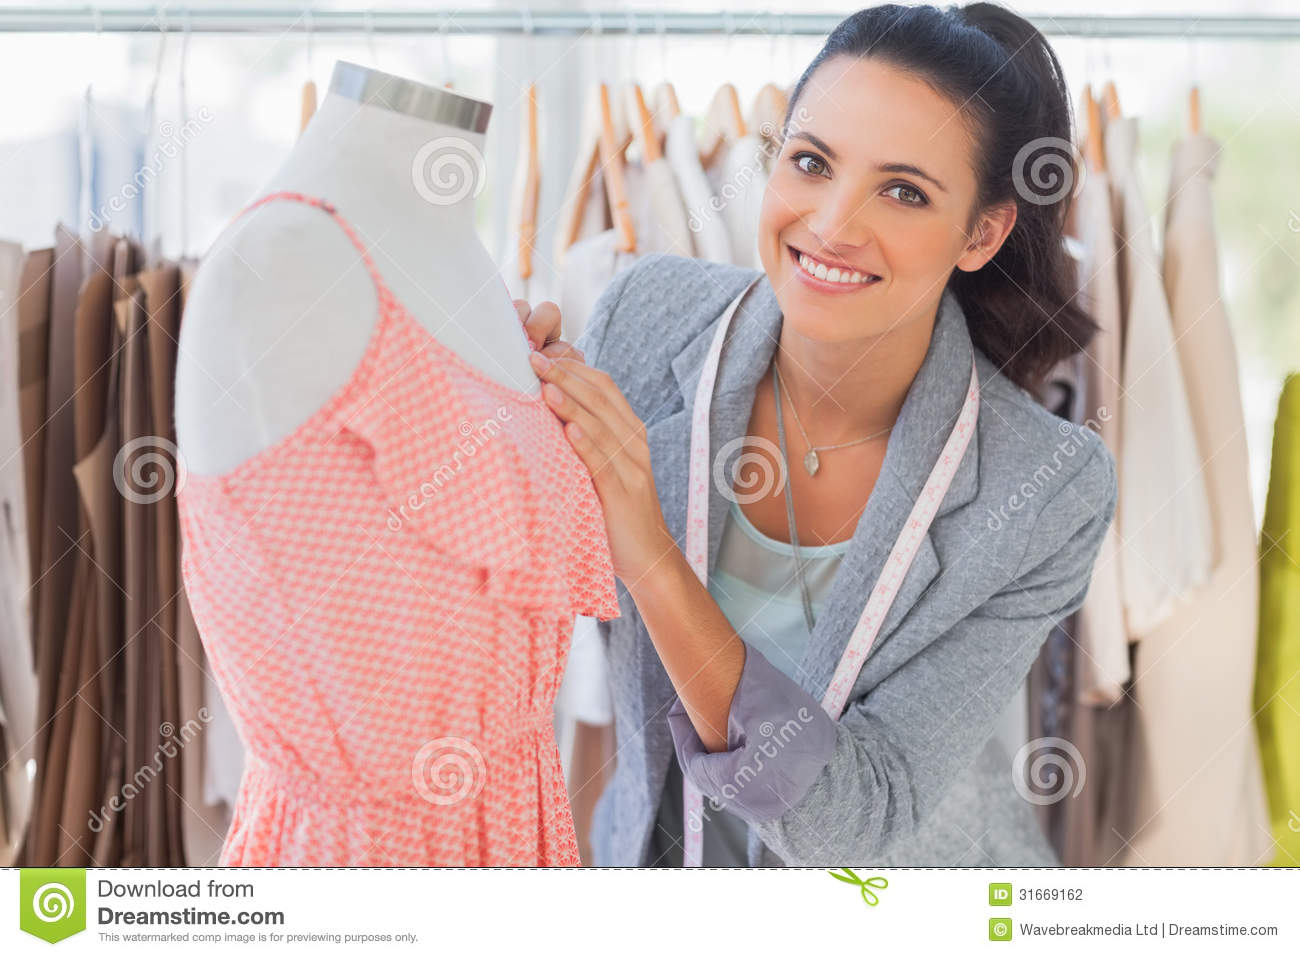 Smiling Fashion Designer Fixing Dress On A Mannequin Stock Photography Image 31669162